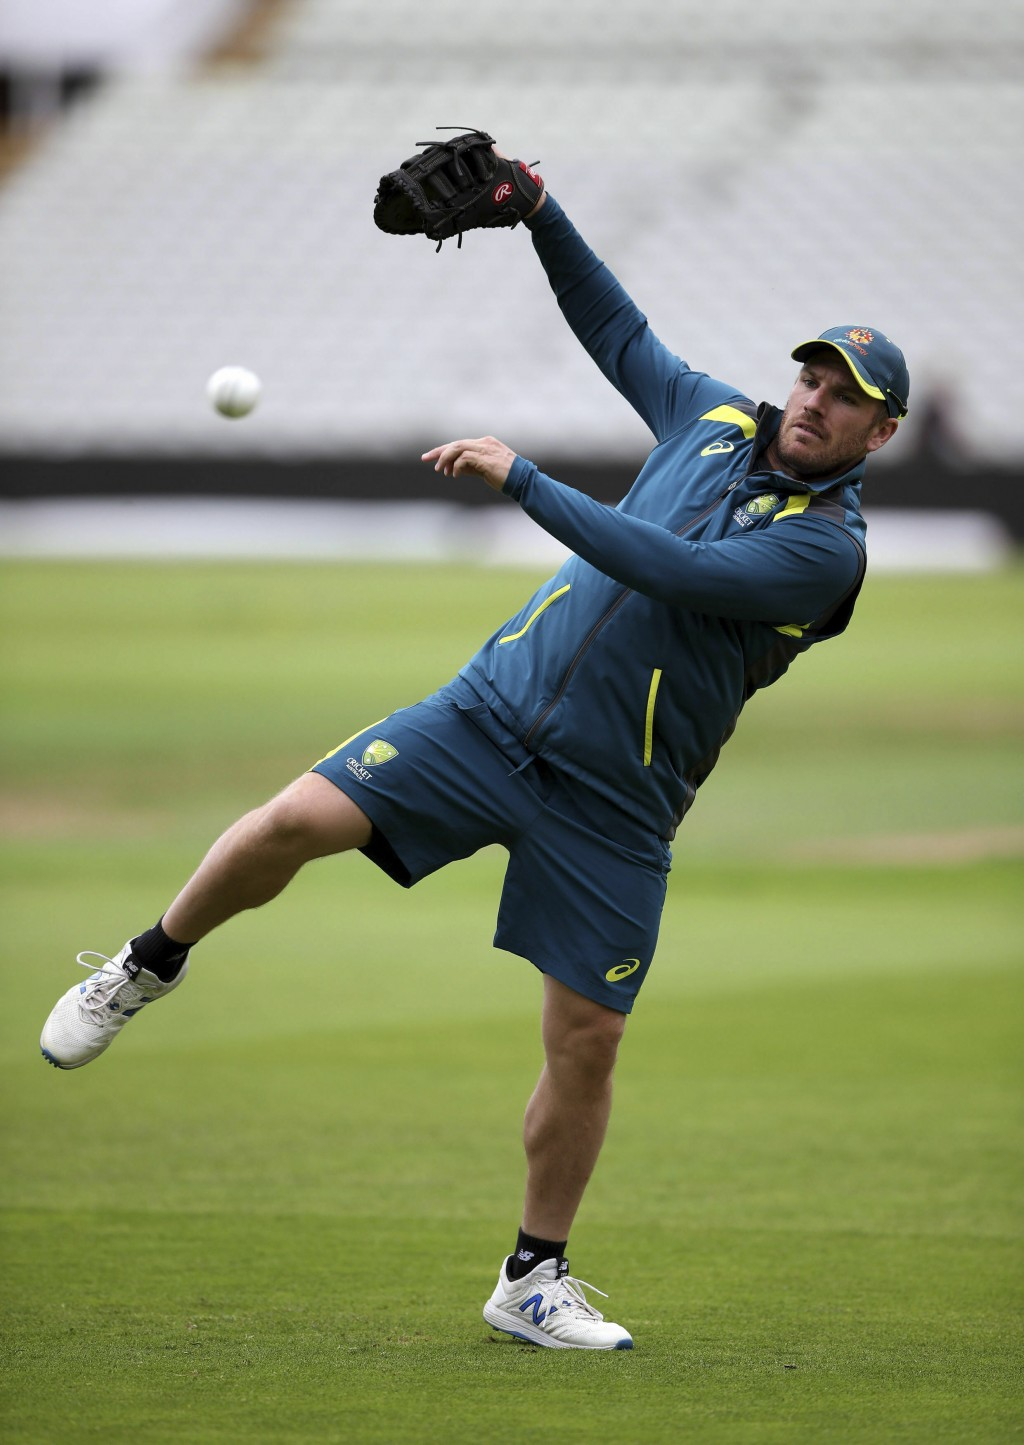 Australia's Aaron Finch fields during the nets session at Edgbaston, Birmingham, England, Wednesday July 10, 2019 one day ahead of their Cricket World...